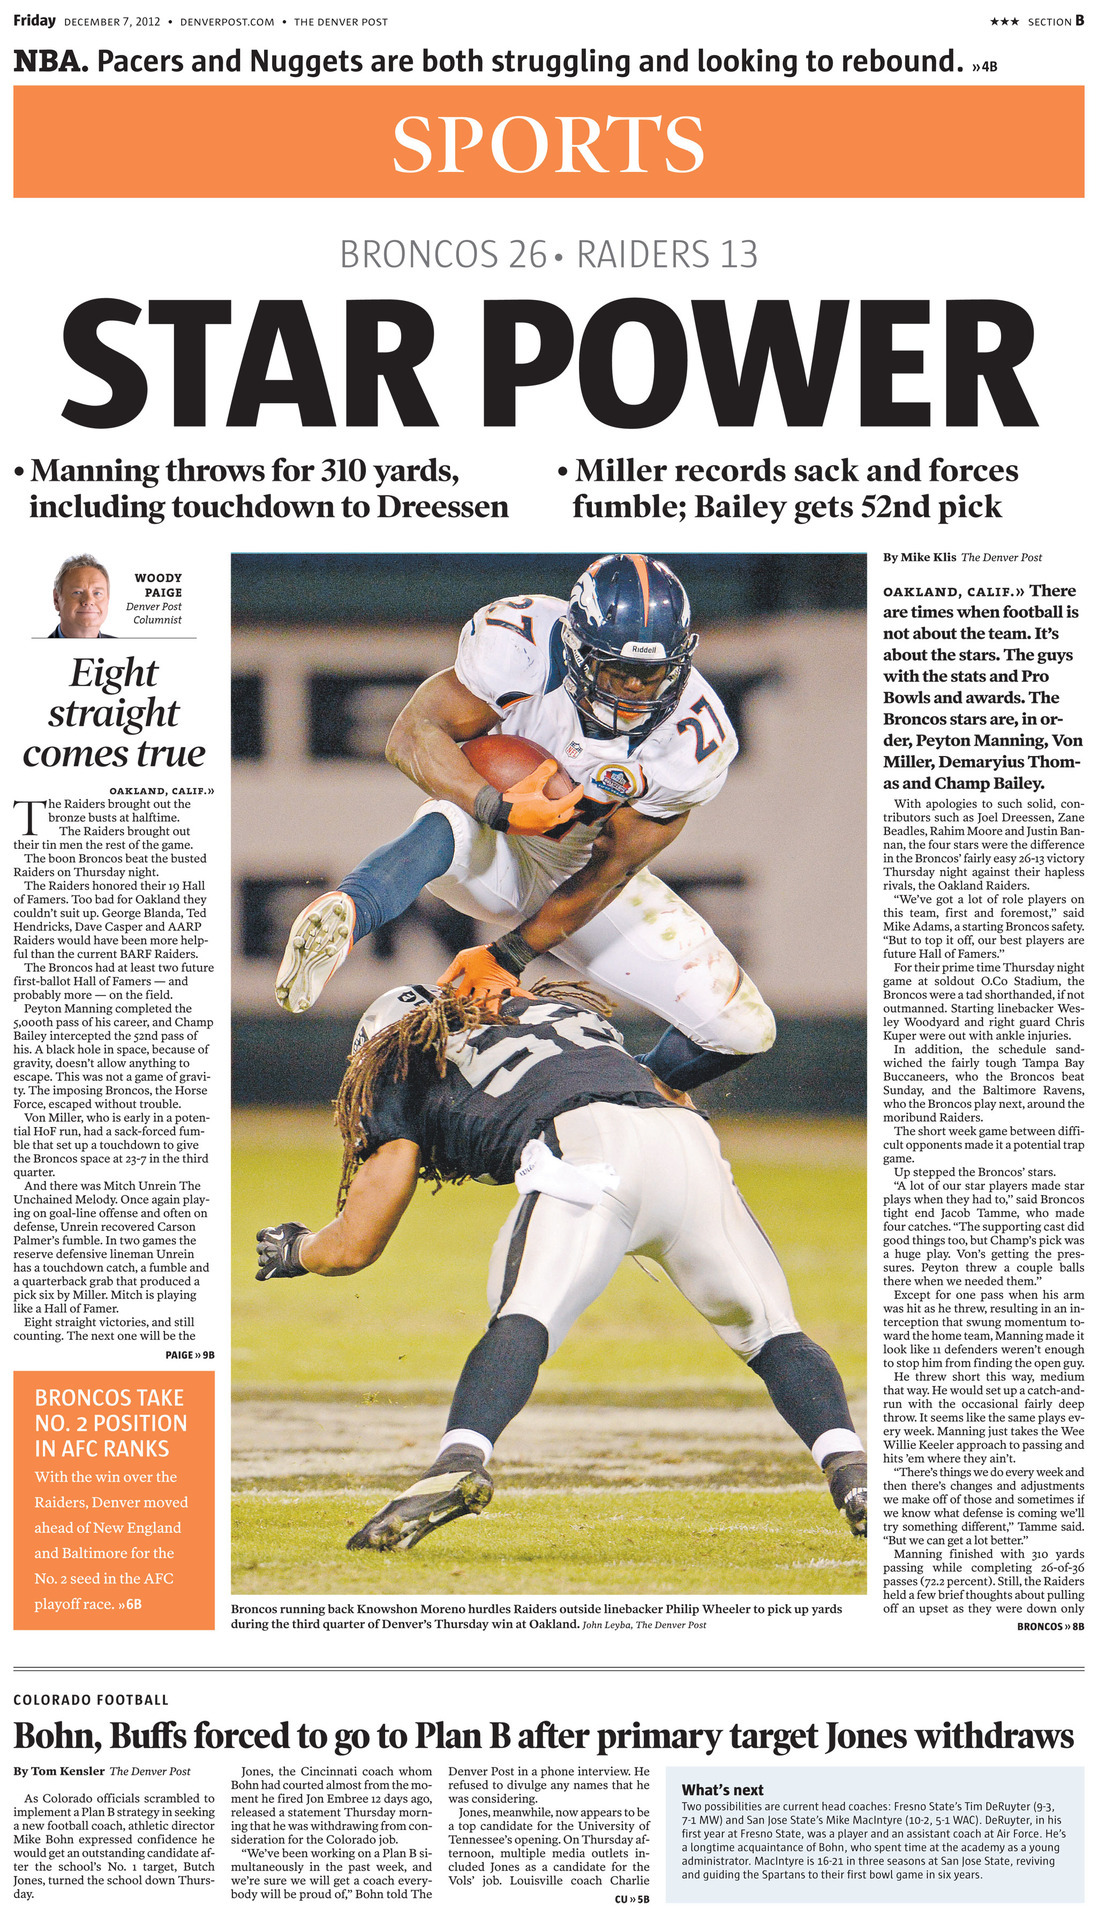 "Today's Sports Front Page: STAR POWER. The Broncos best players rose to the occasion in a Thursday night prime-time game, beating the Raiders 26-13 to win their eighth straight. Full story…  Woody Paige: Broncos roll to 8 straight with team effort  More photos: Field level for Broncos-Raiders in Oakland Run game: Broncos make a commitment, close out Raiders Champ Bailey: Interception was ""big moment"" Best and worst: Down the field, then stalled  Boxscore: Broncos 26, Raiders 13  Broncos Mailbag: Can this team go all the way?  First-and-Orange blog: Notes, analysis, buzz  Complete coverage of Denver Broncos from The Post"